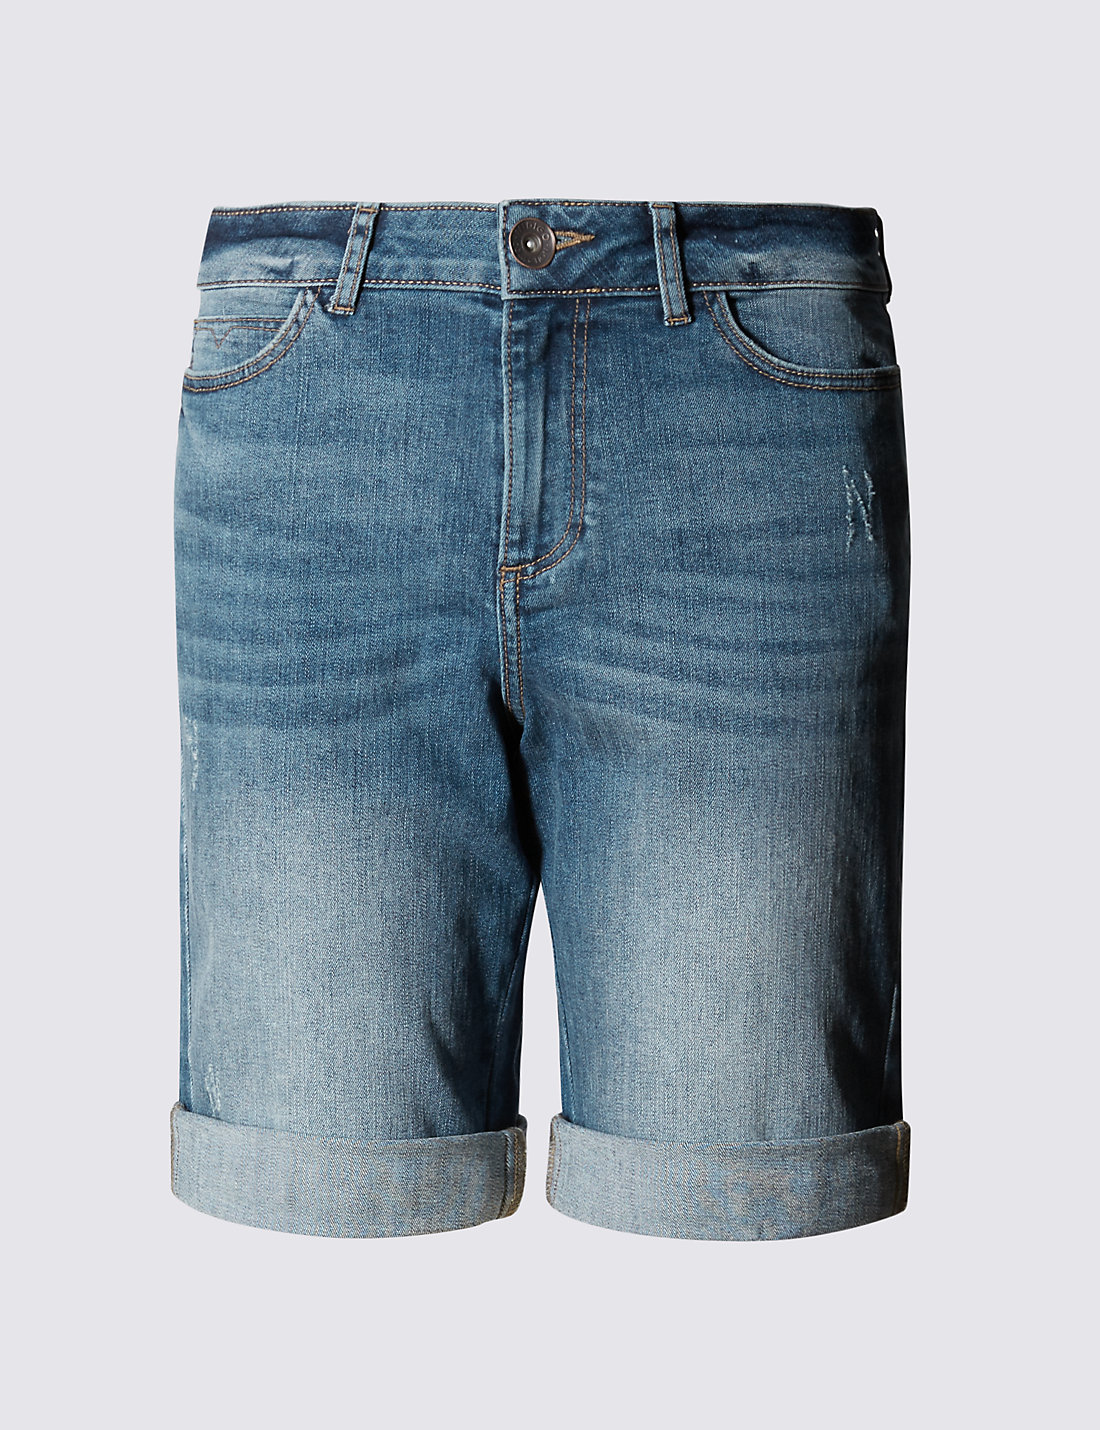 Boyfriend Denim Shorts | M&S